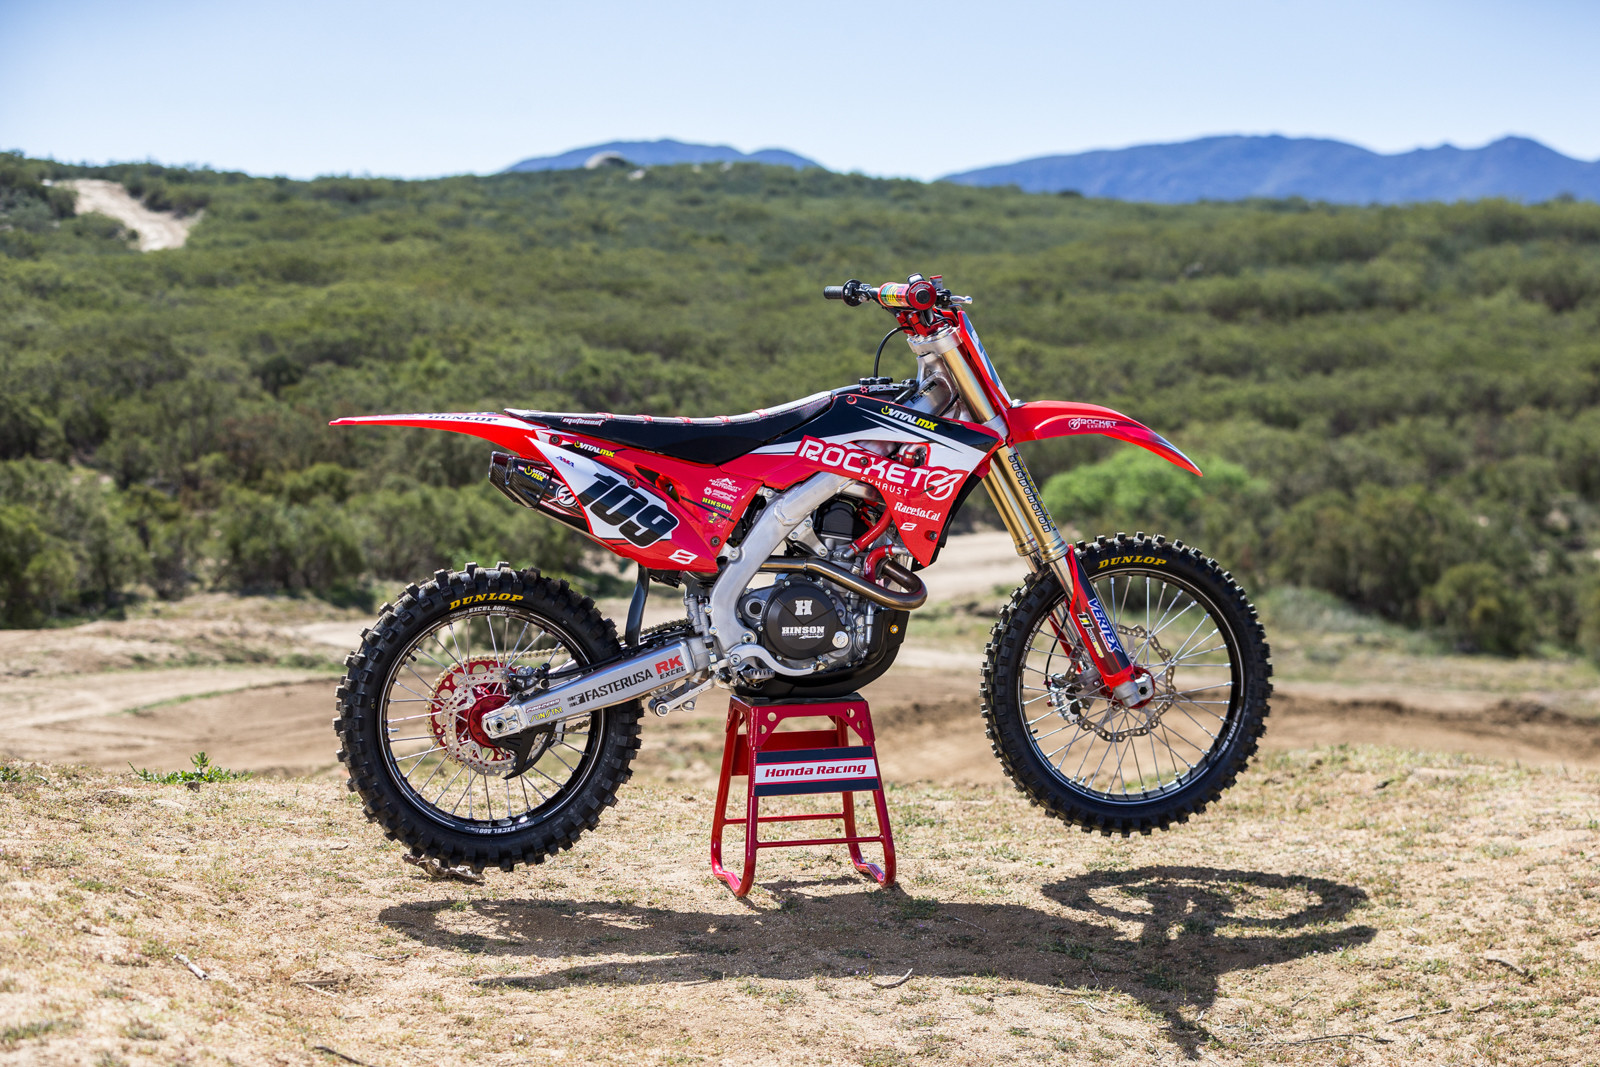 Tested Rocket Performance Honda Crf450r Motocross Feature Stories